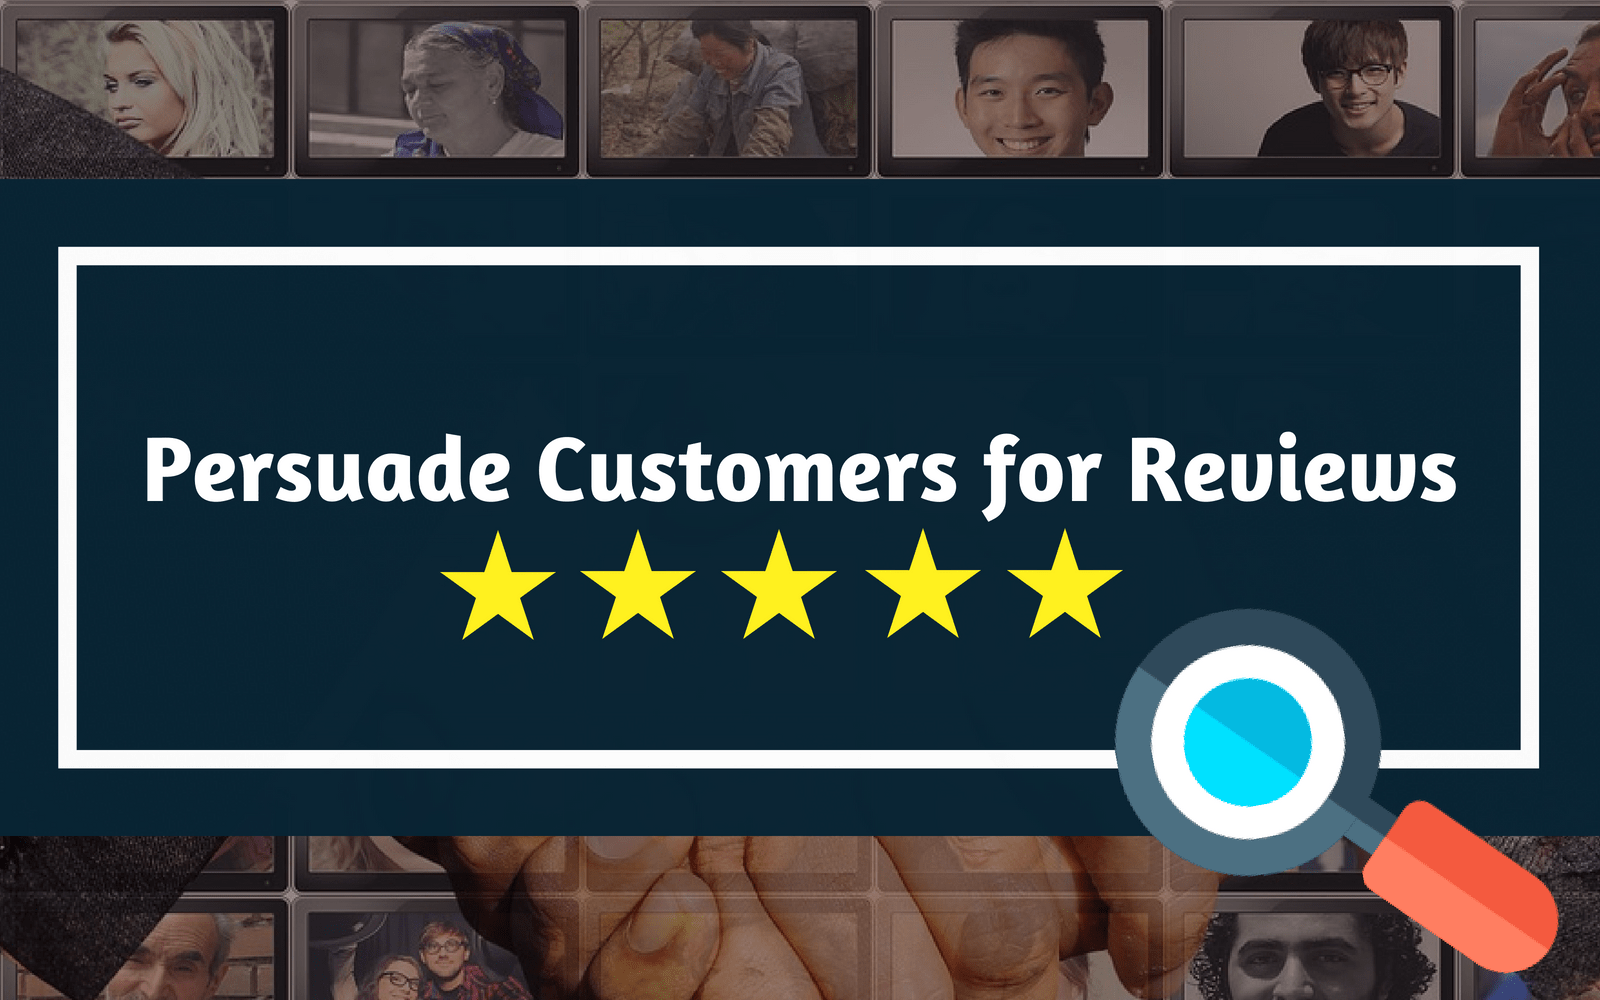 Persuade Customers for 5 Star Reviews Image